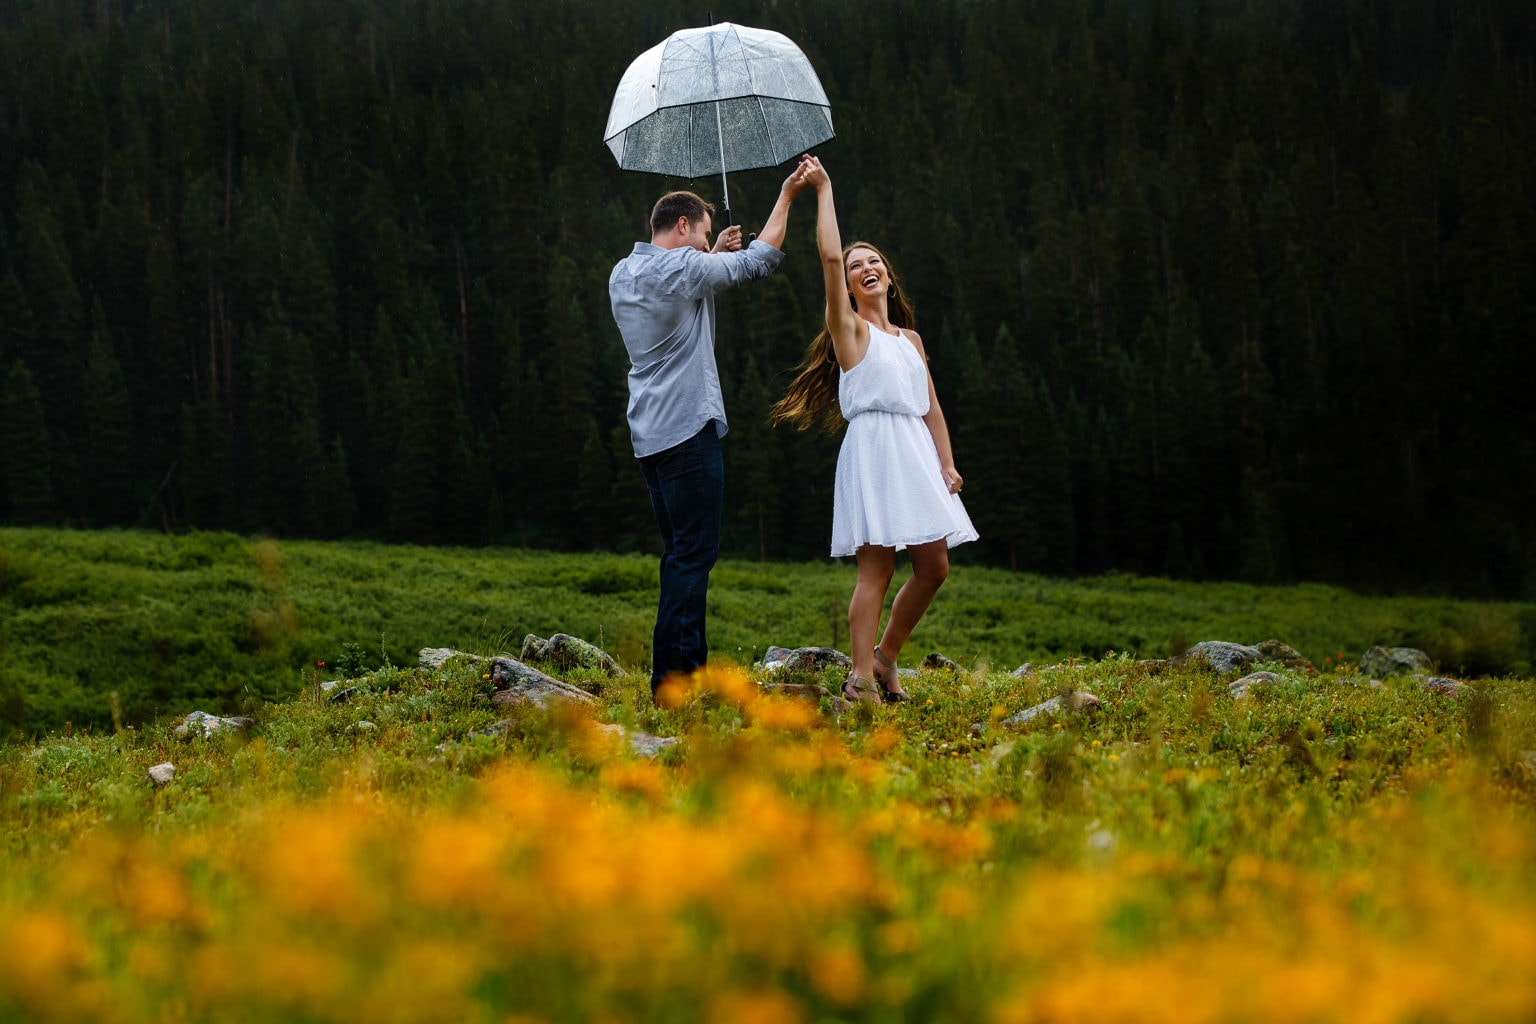 A couple dances in the rain near a patch of wildflowers during their Loveland Pass summer engagement session in Colorado